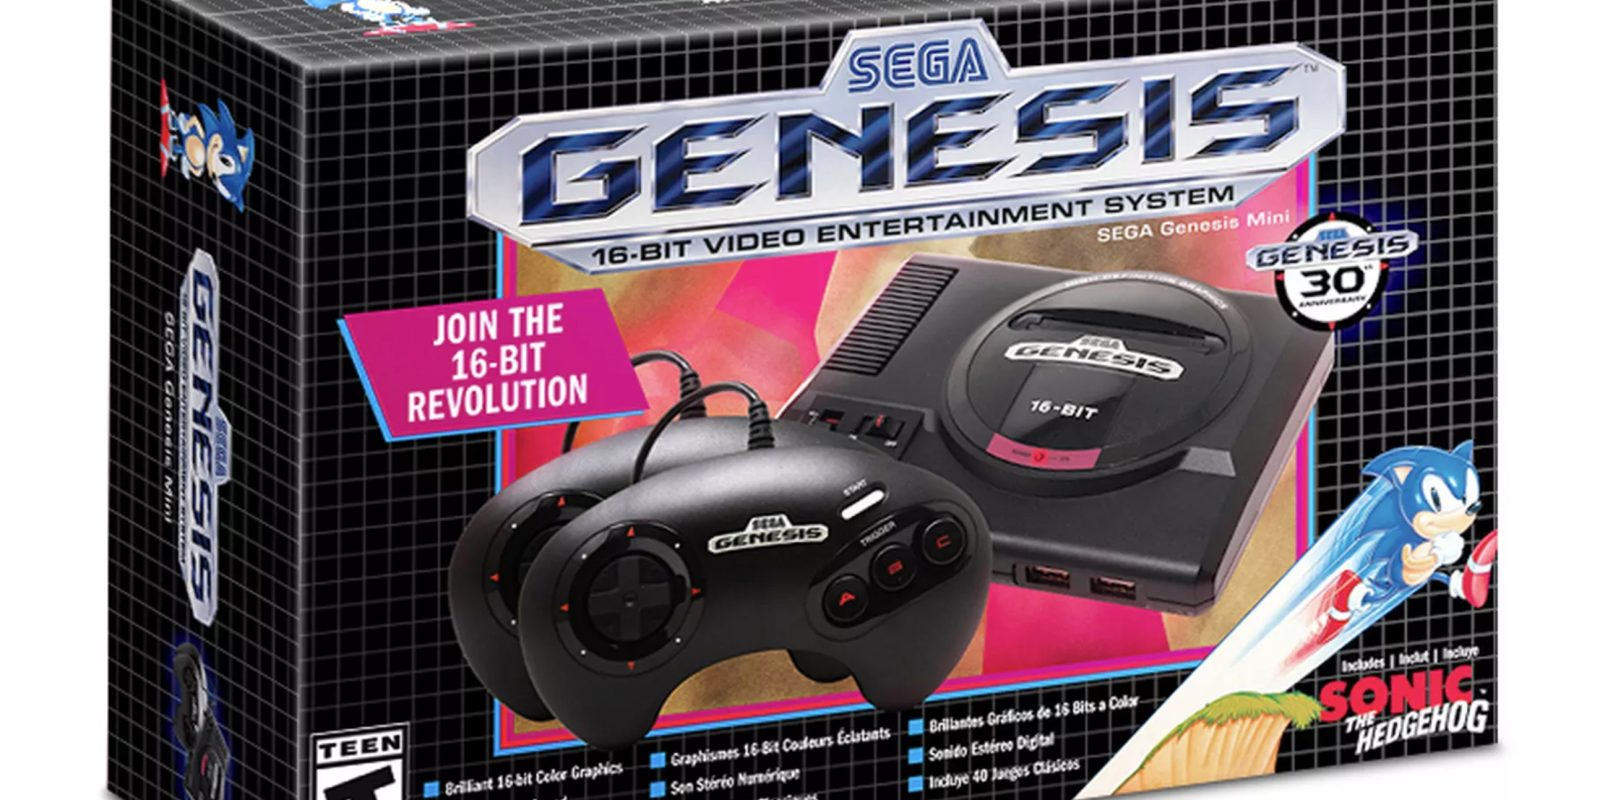 Sega Genesis Mini hands-on reveals a retro console worth your attention